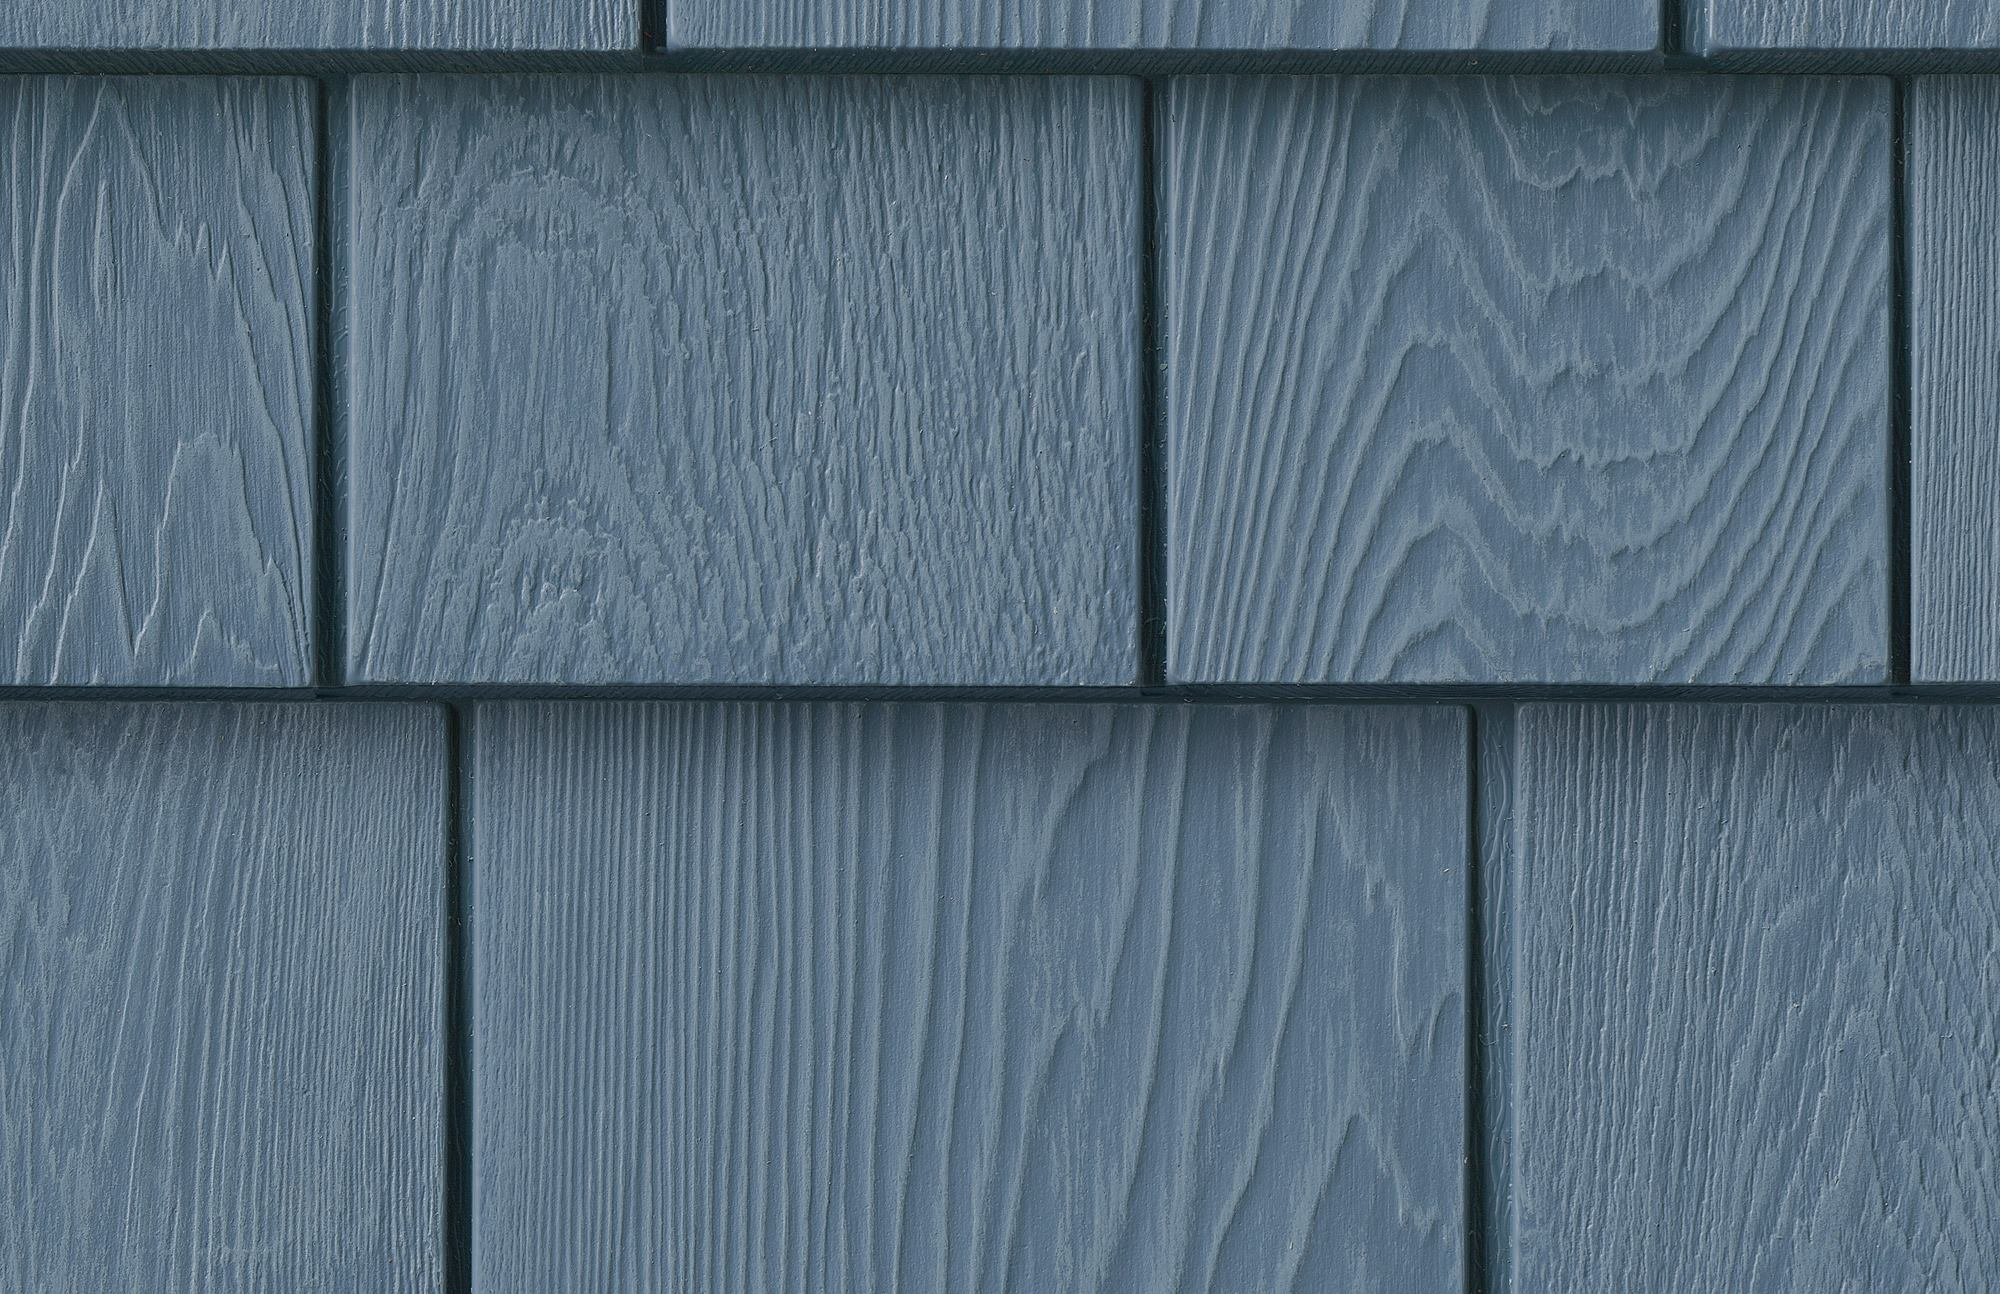 Tapco Launches New Grayne Composite Siding Line Jlc Online